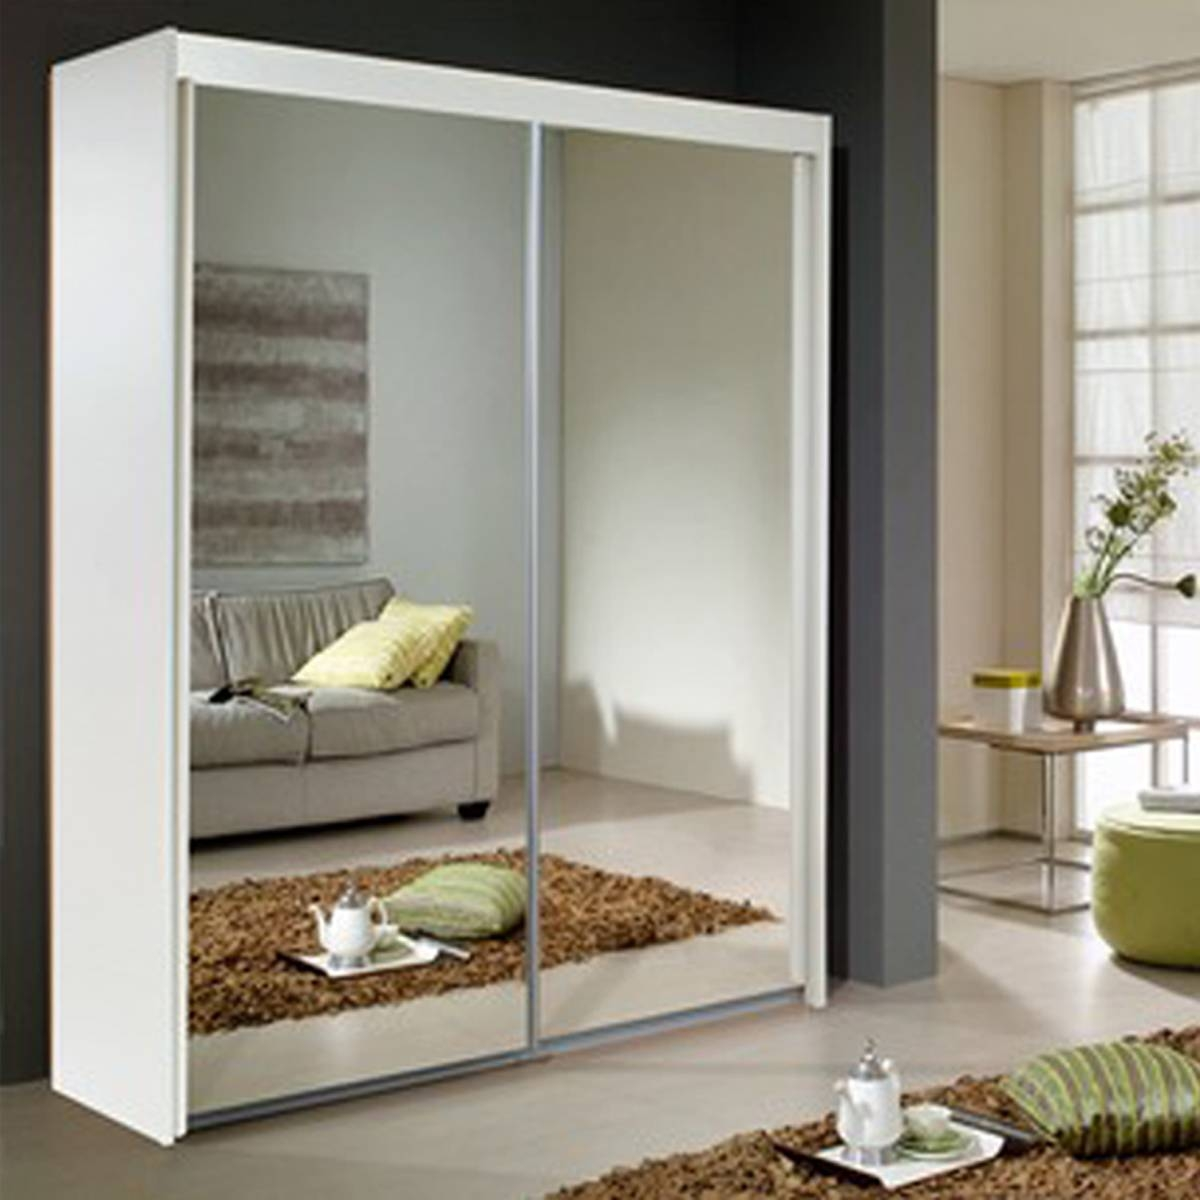 Sliding Door Mirrored Wardrobe From The House Of Reeves Croydon regarding White Gloss Mirrored Wardrobes (Image 10 of 15)